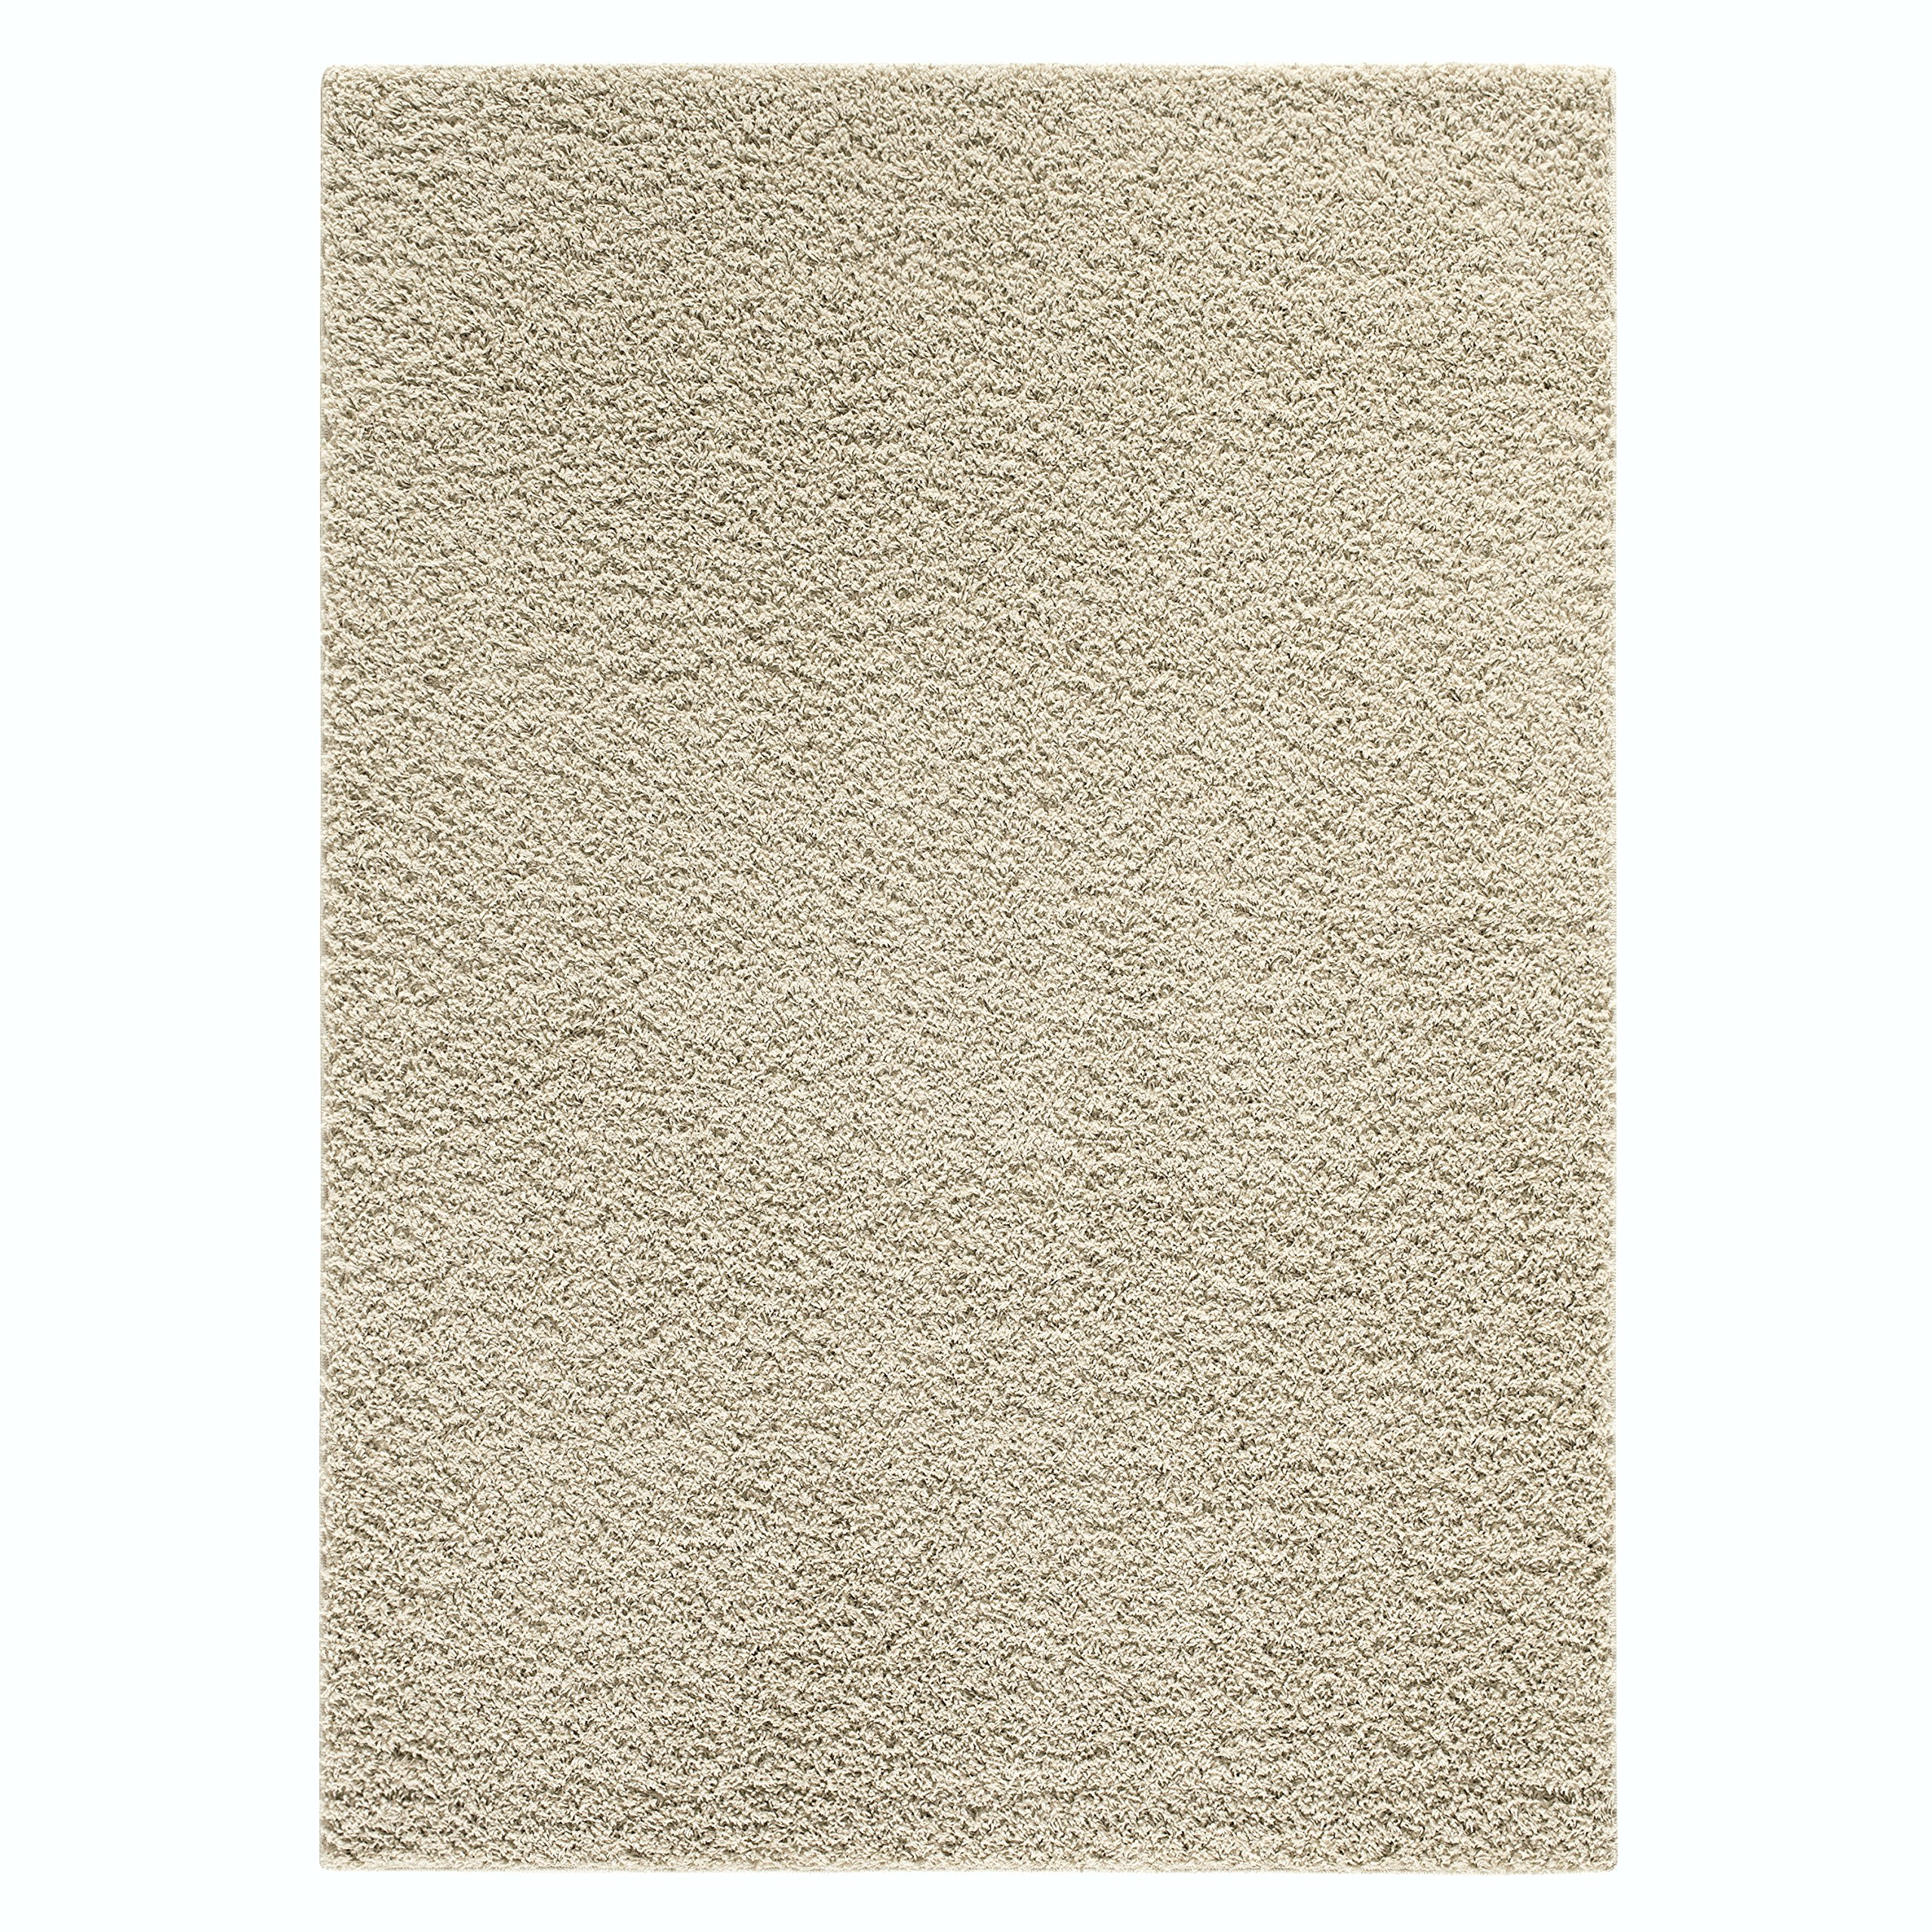 Area Rugs, Maples Rugs [Made in USA][Catriona] 7' x 10' Non Slip Padded Large Rug for Living Room, Bedroom, and Dining Room - Sand